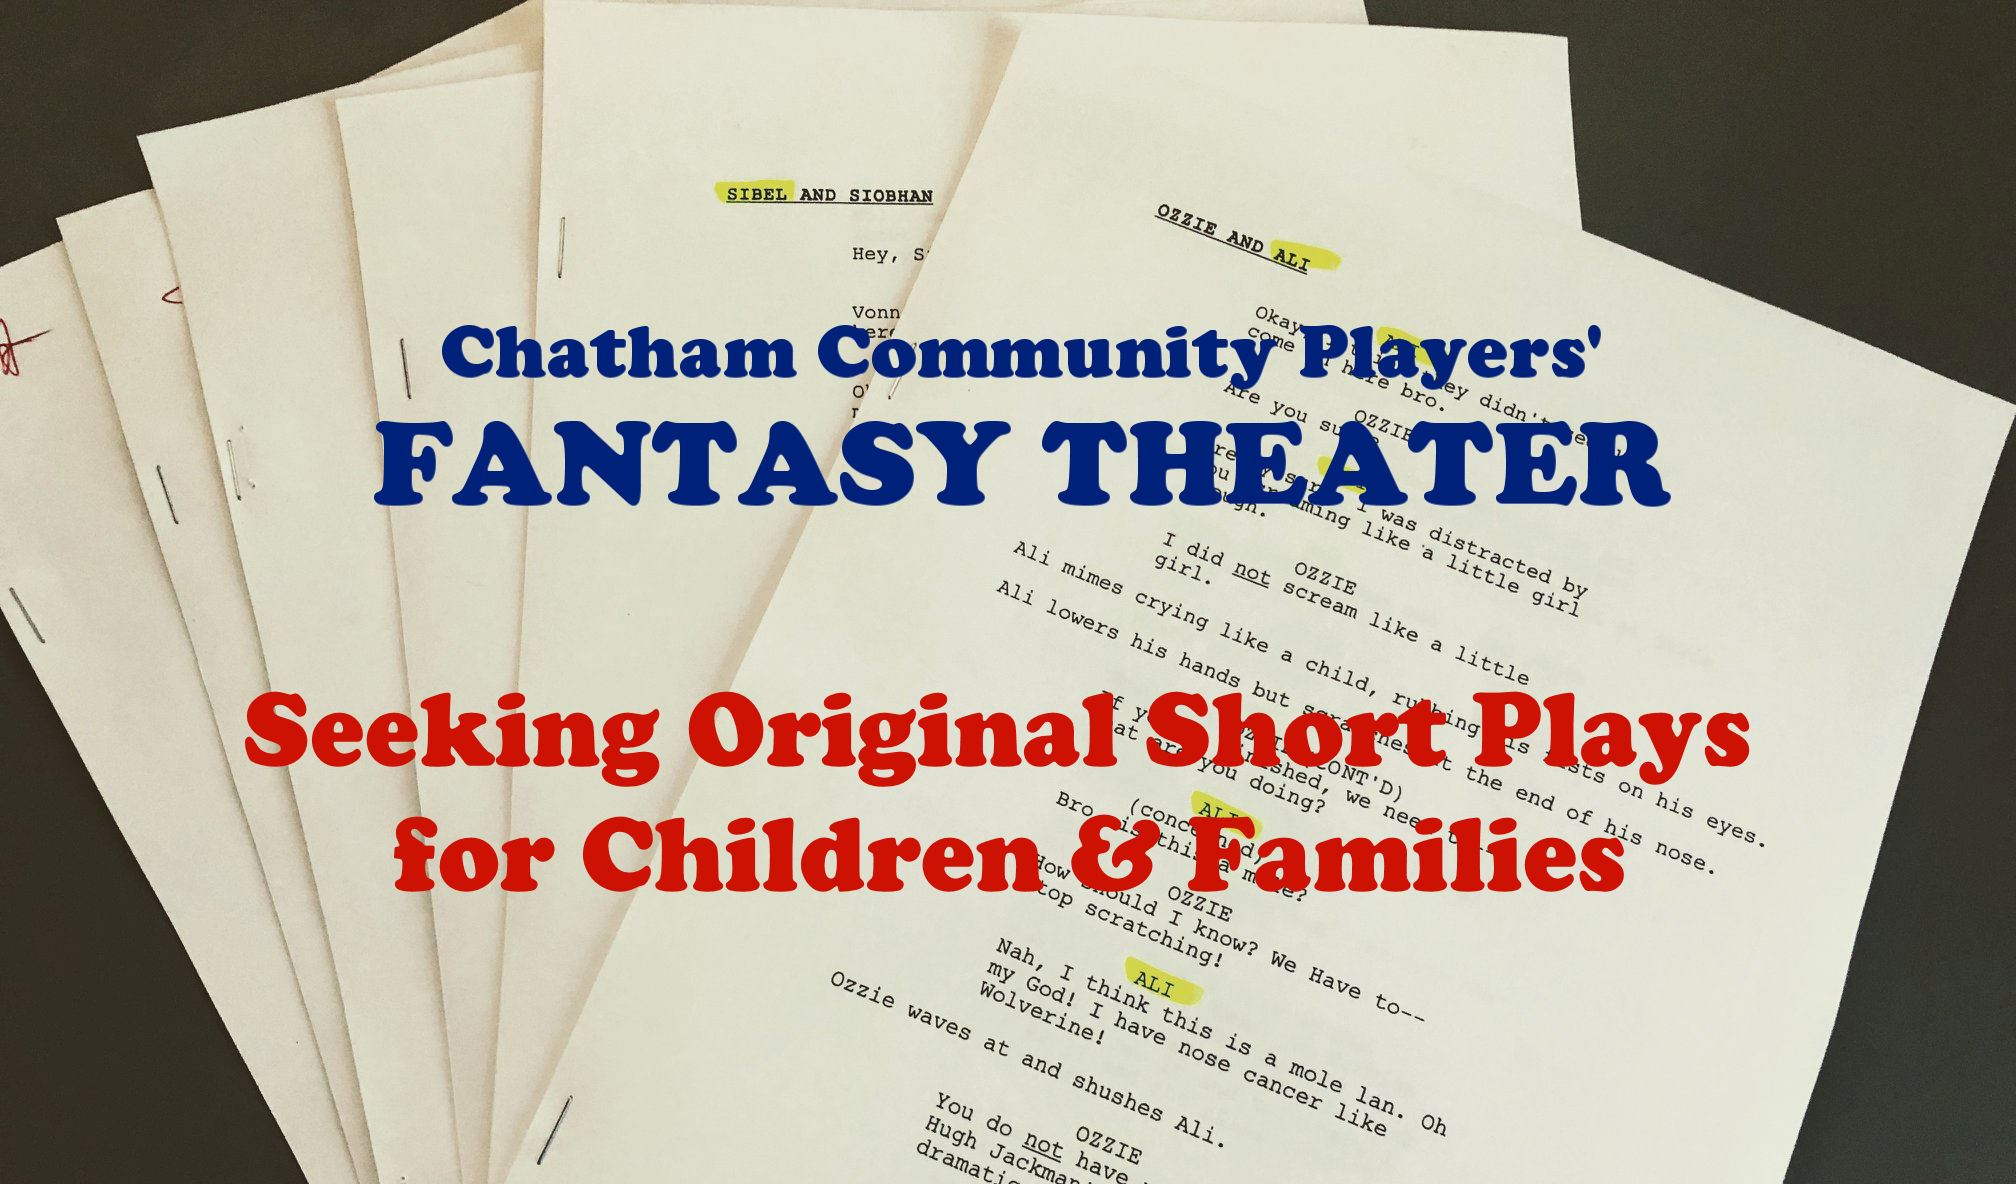 Fantasy Theater Seeking Short Plays for Children and Families